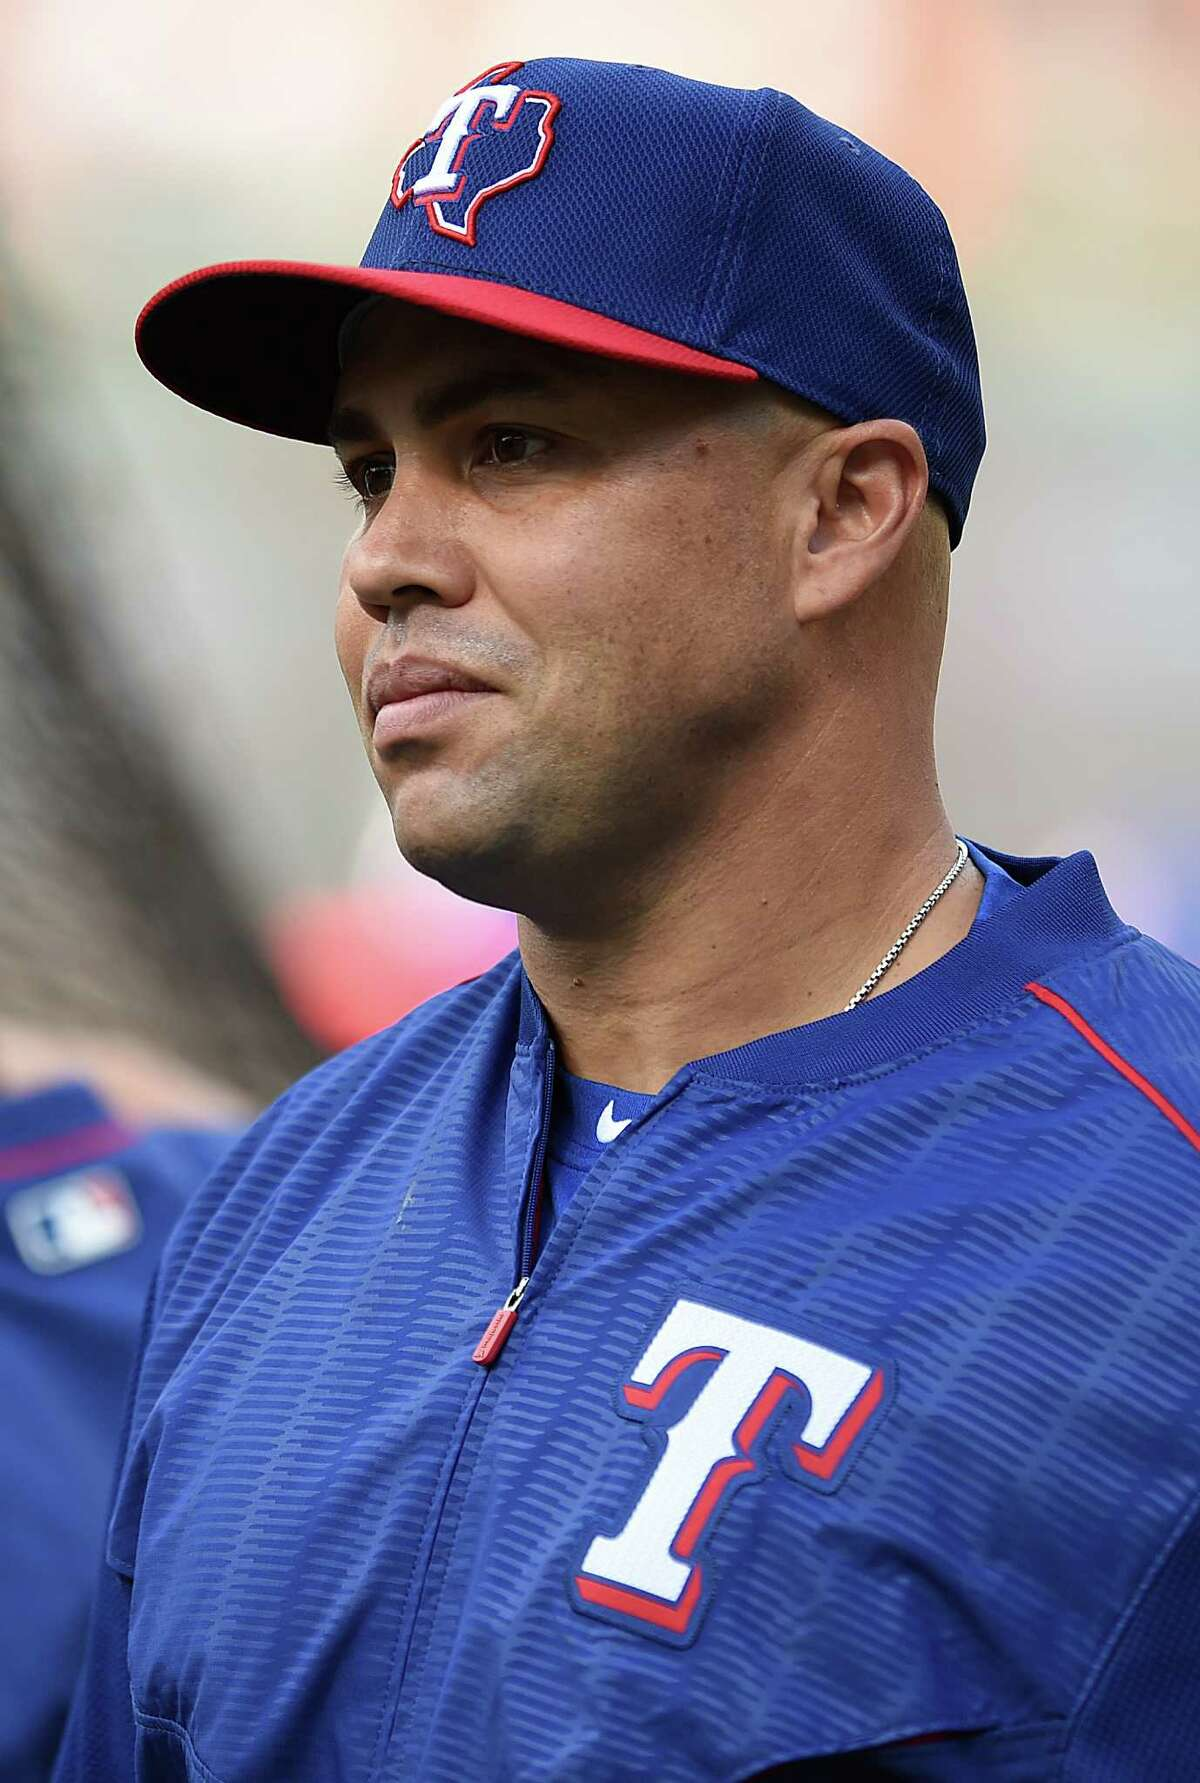 Former Astros outfielder Carlos Beltran - who's been booed steadily by the Minute Maid Park fans since his departure after the 2004 season - will be back Friday with the AL West rival Rangers. Click through the gallery see who else makes the cut as Houston's most loathed sports figures through the years.